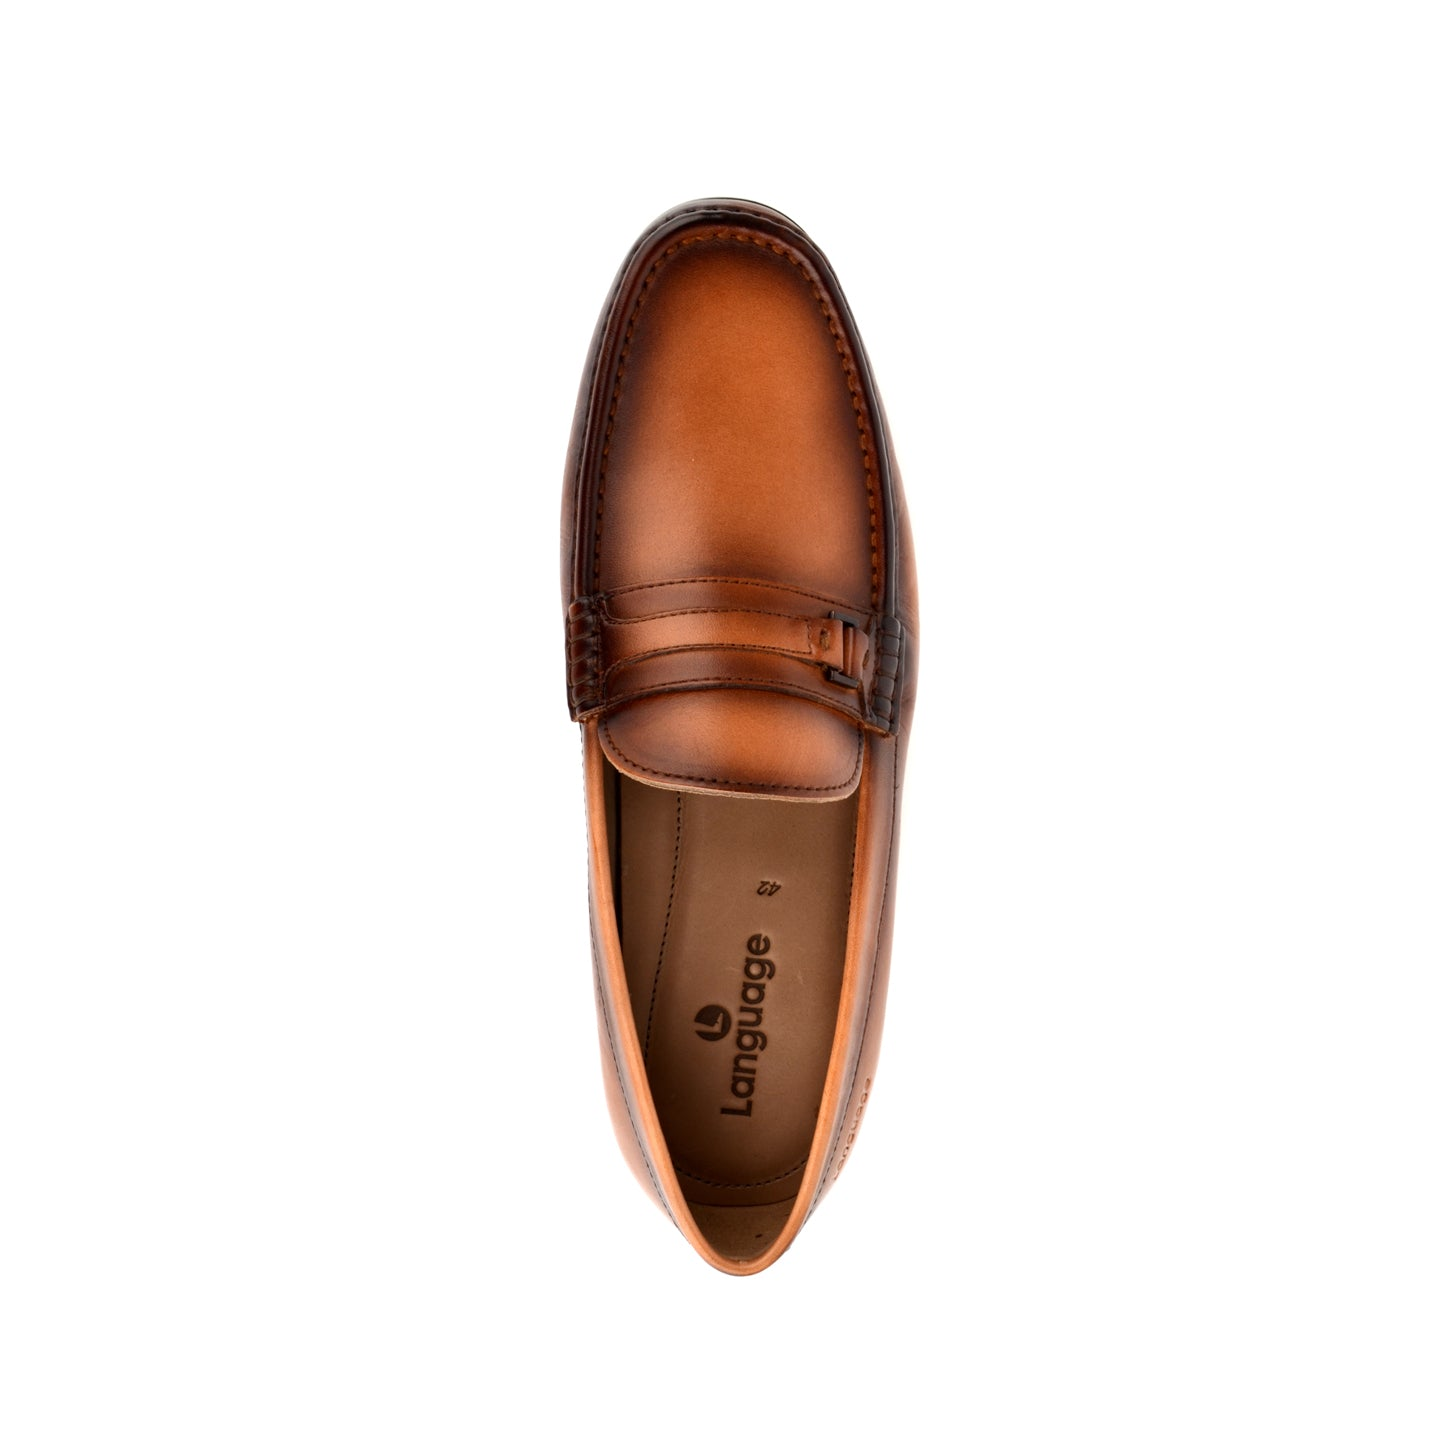 LM602 - Language Welsh Men's Formal Tan Moccasins